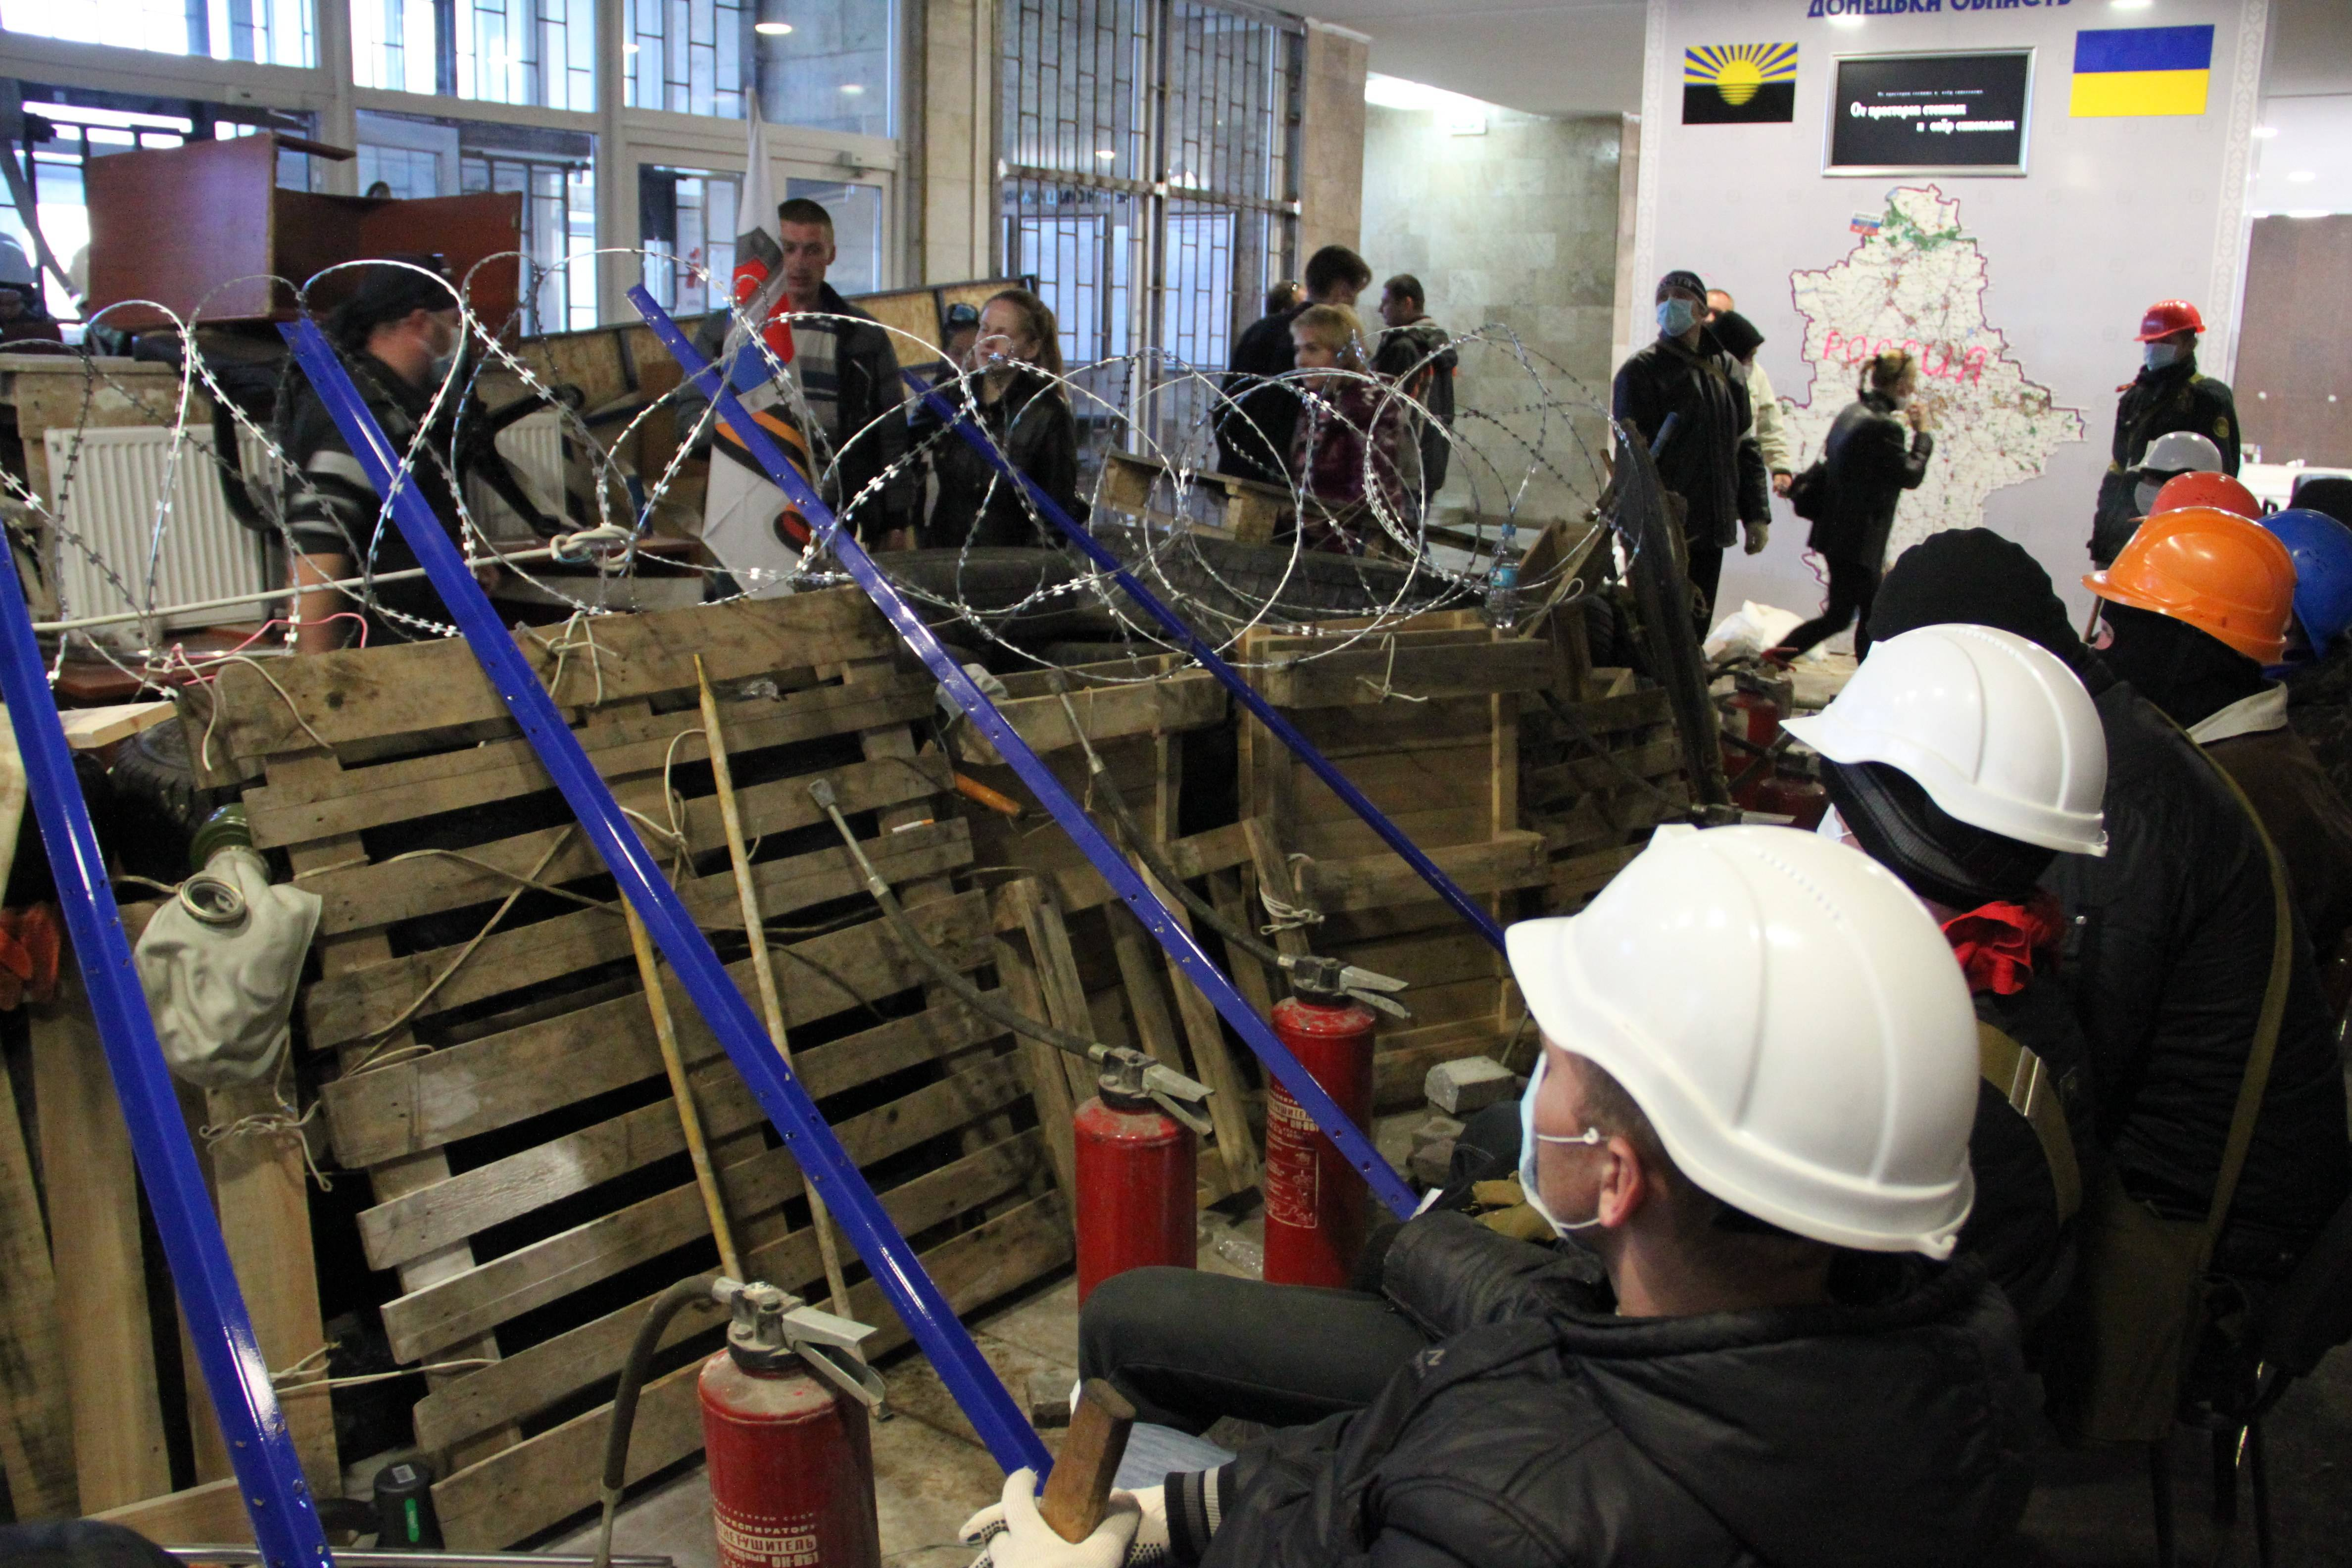 Activists prepare a barricade inside the regional administration building in Donetsk, Ukraine, Monday. A Ukrainian news agency is reporting pro-Russian separatists who have seized the regional administration building in the eastern Ukrainian city of Donetsk proclaimed the region an independent republic.